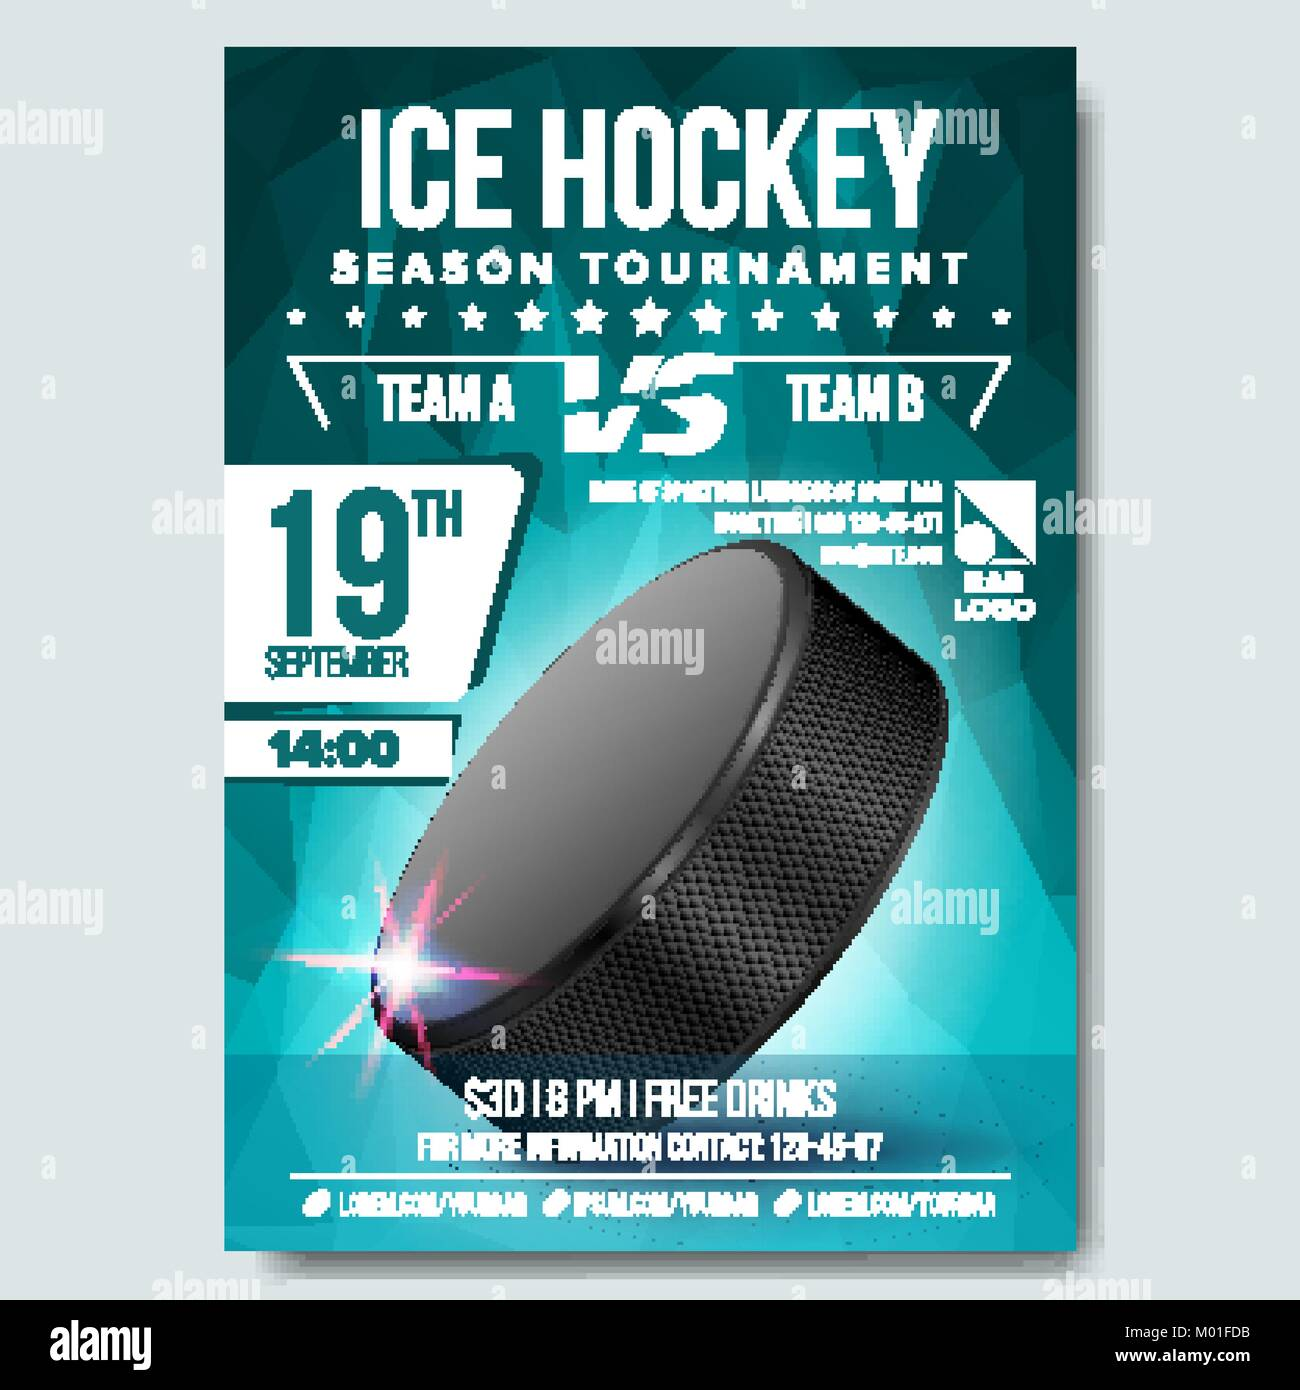 Ice Hockey Poster Vector Banner Advertising A4 Size Sport Event Announcement Winter Game League Design Championship Illustration